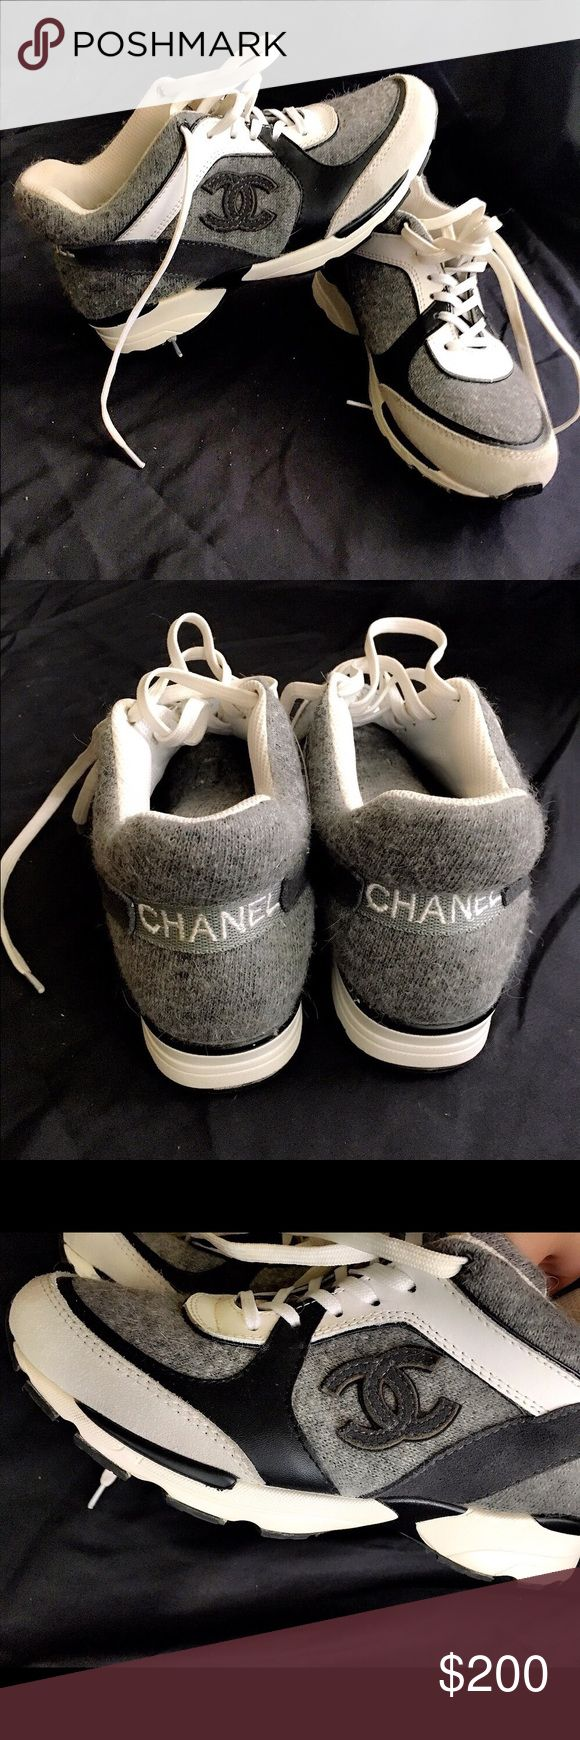 Designer inspired sneakers.  Dont ask obvious! Designer inspired bag. Please dont ask obvious. Price reflects authenticity. chanel Shoes Sneakers